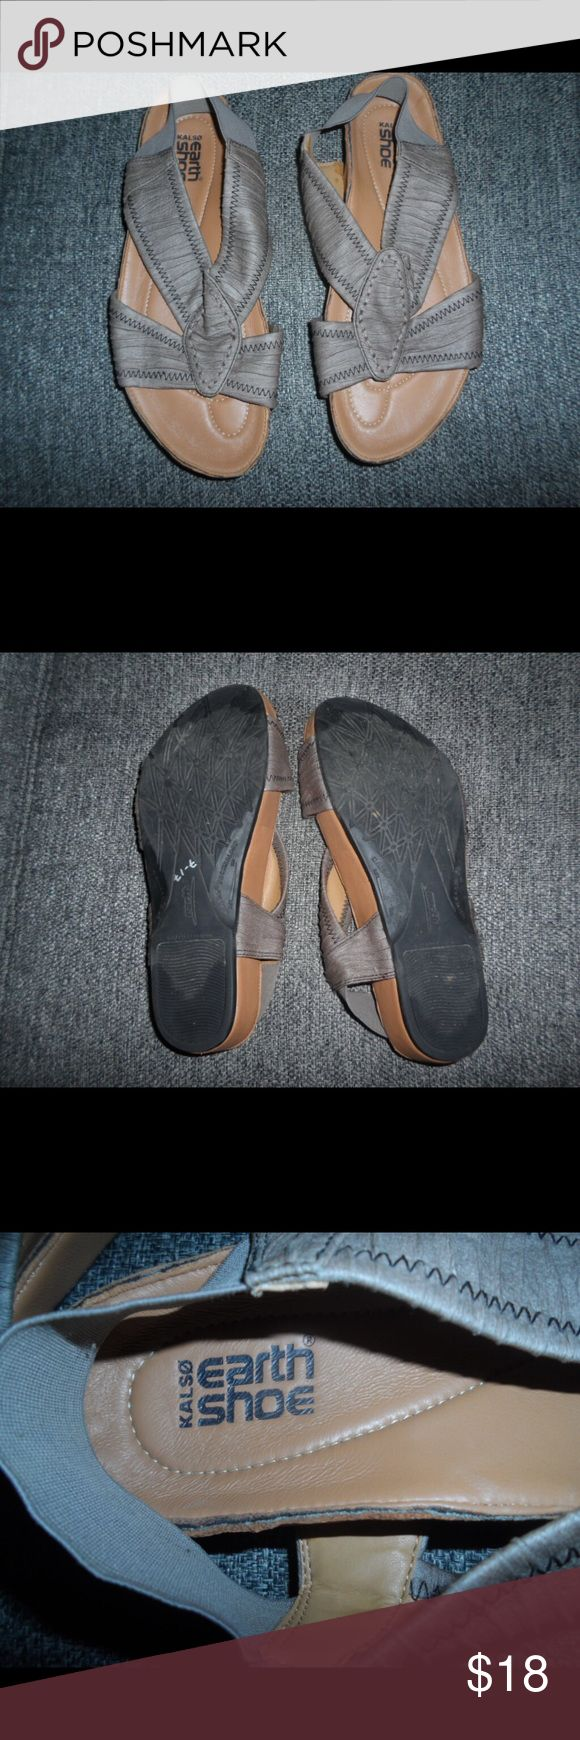 Kalso Earth Shoe Sandal in good condition. Kalso Shoes Sandals